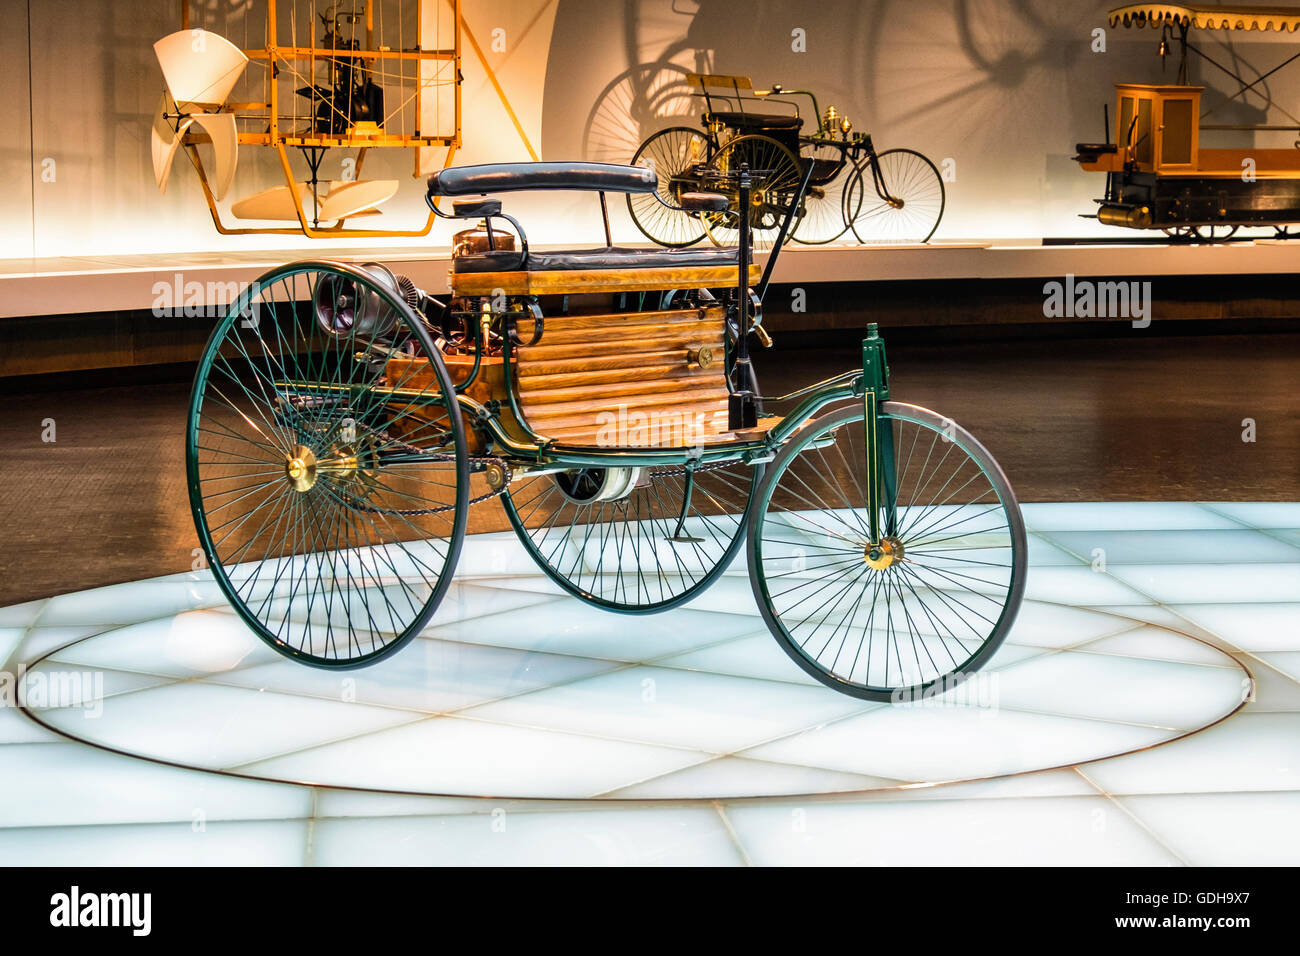 Mercedes-Benz Museum, Stuttgart, Germany. The Benz Motor Car No. 1 is a three-wheeled, gas-powered horseless carriage.1886 - Stock Image